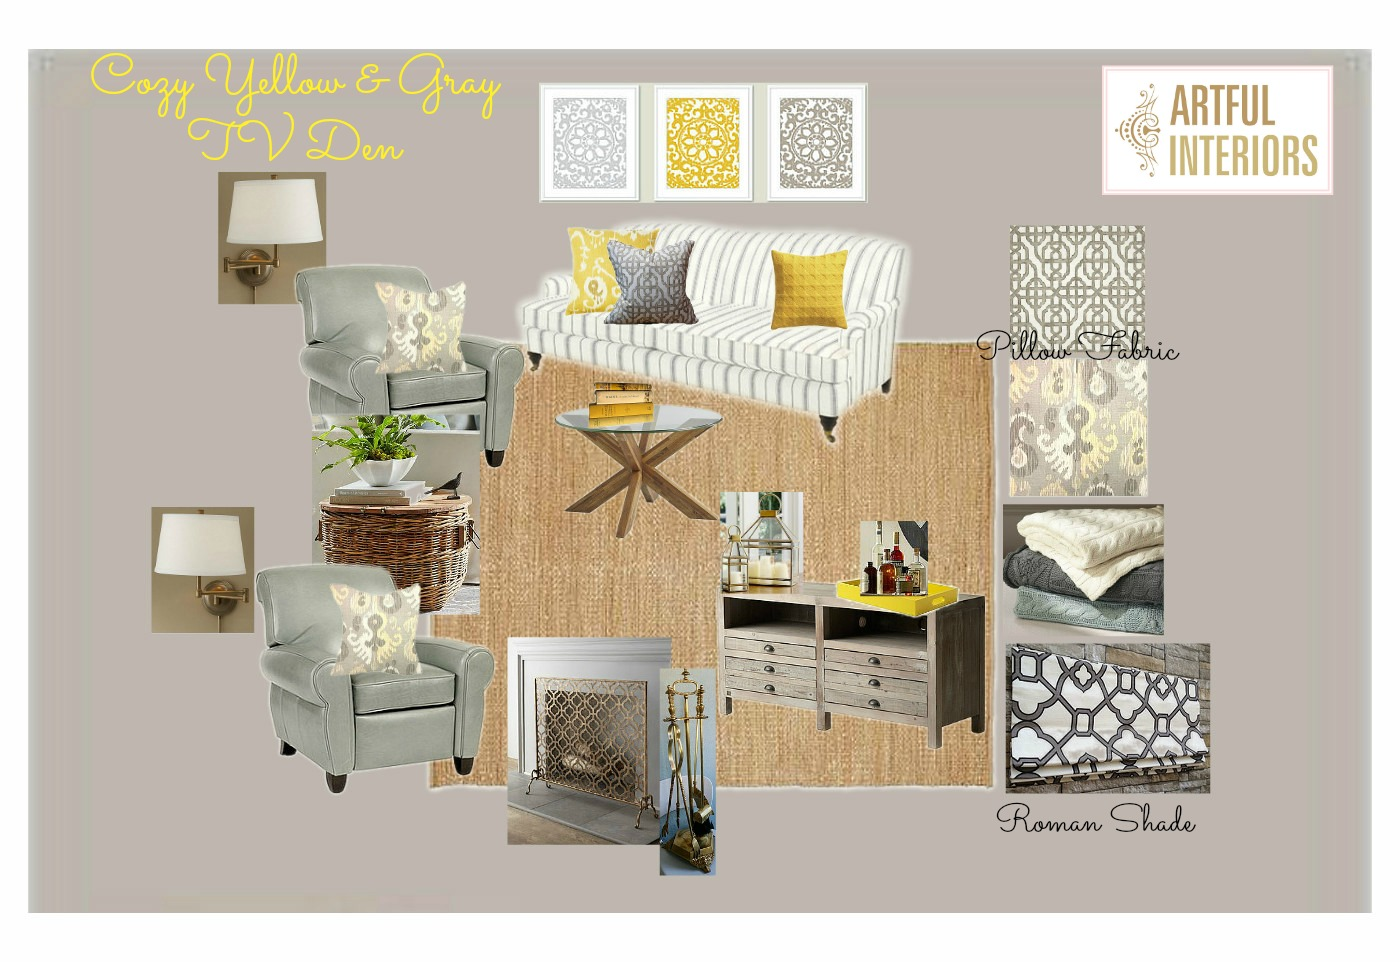 Artful Interiors – Yellow & Gray TV Den - Design Board